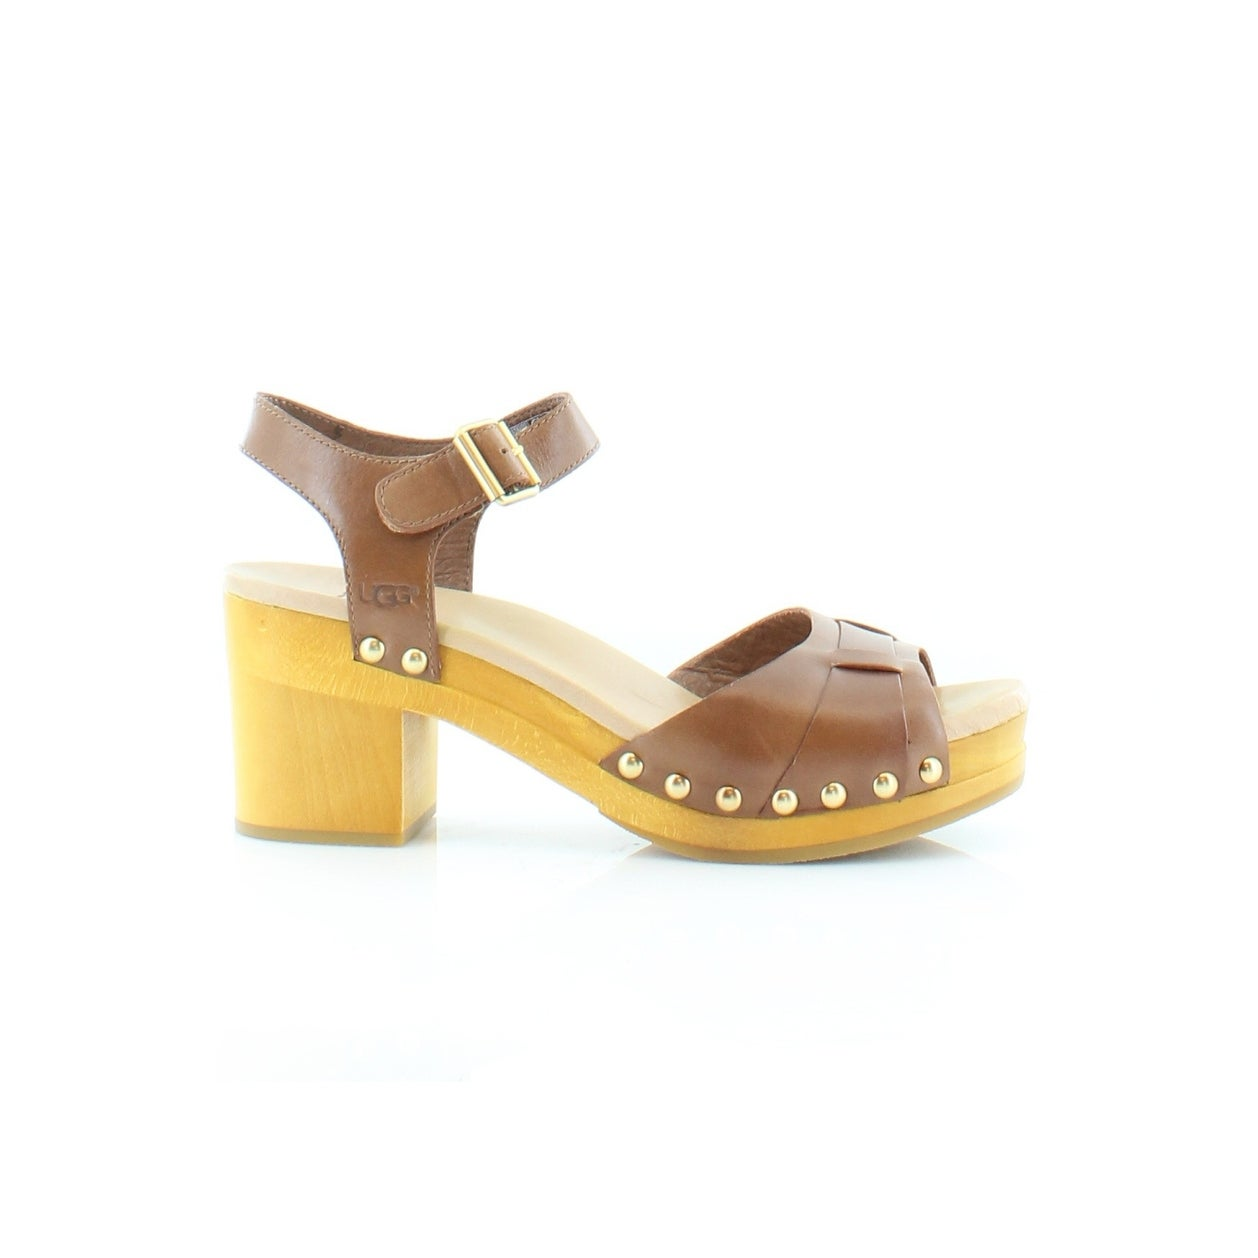 UGG Janie Women's Heels Rust - Free Shipping On Orders Over $45 - Overstock - 27280104